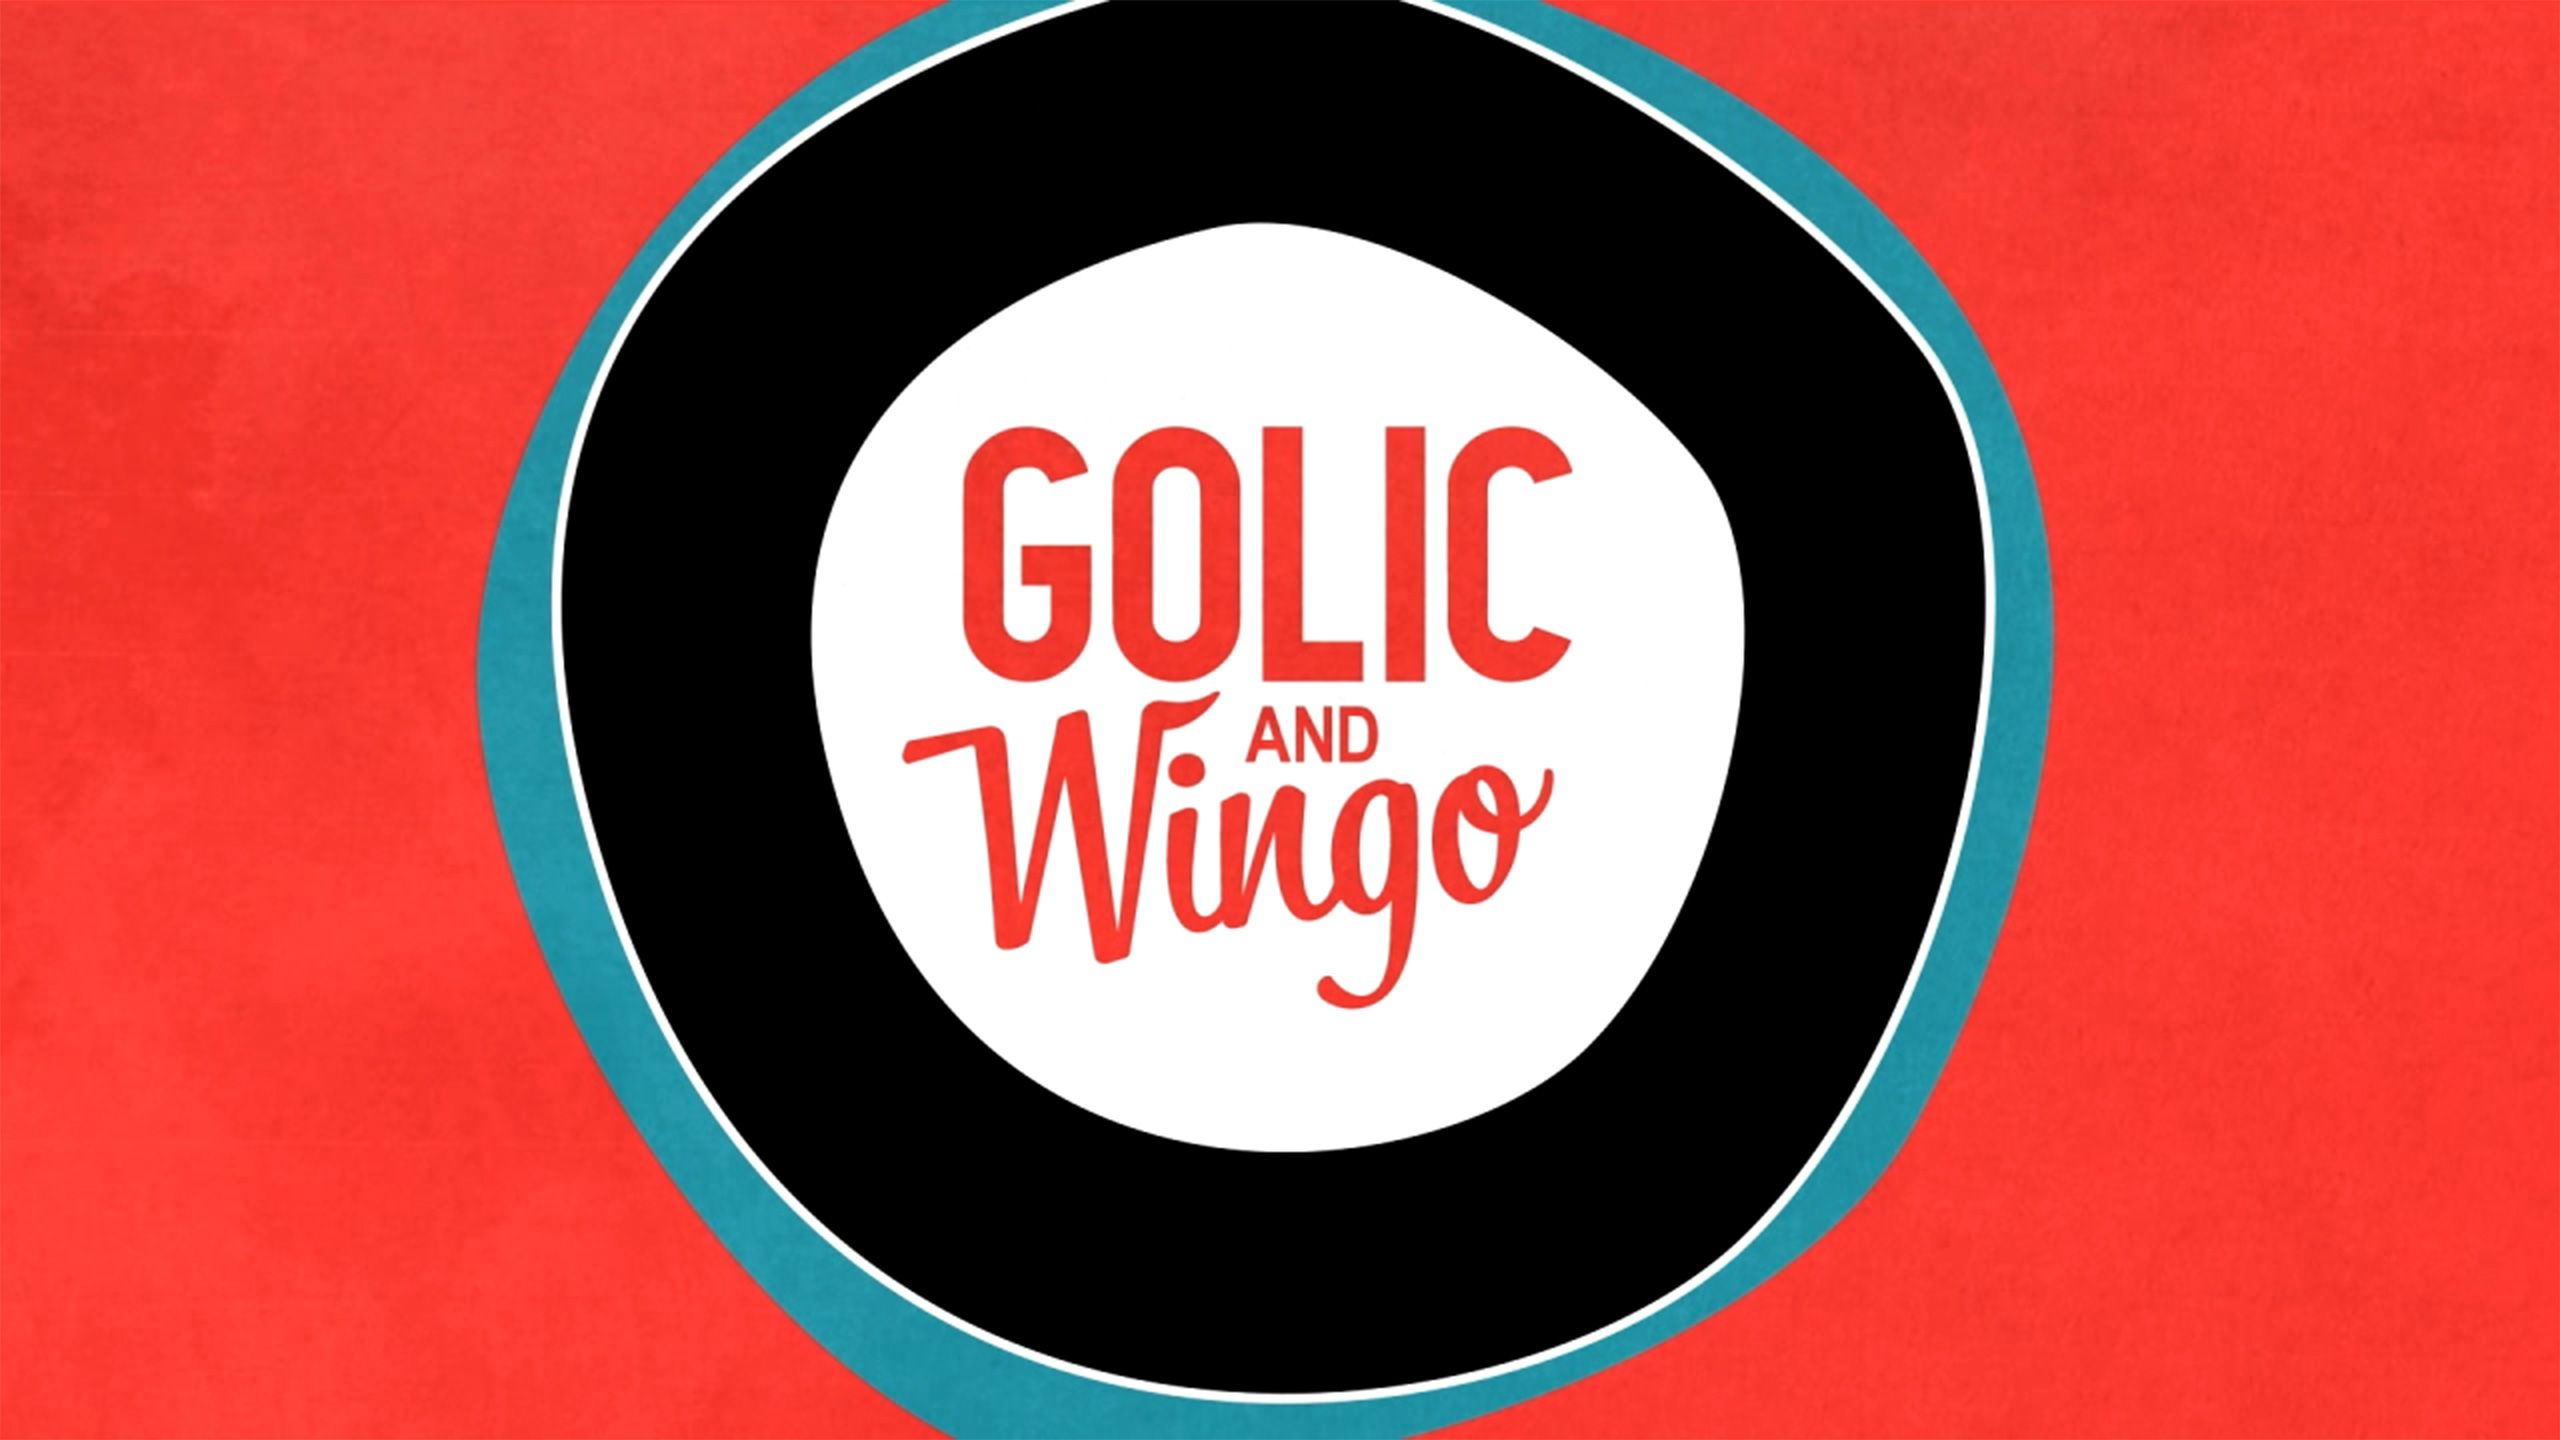 Mon, 1/22 - Golic and Wingo